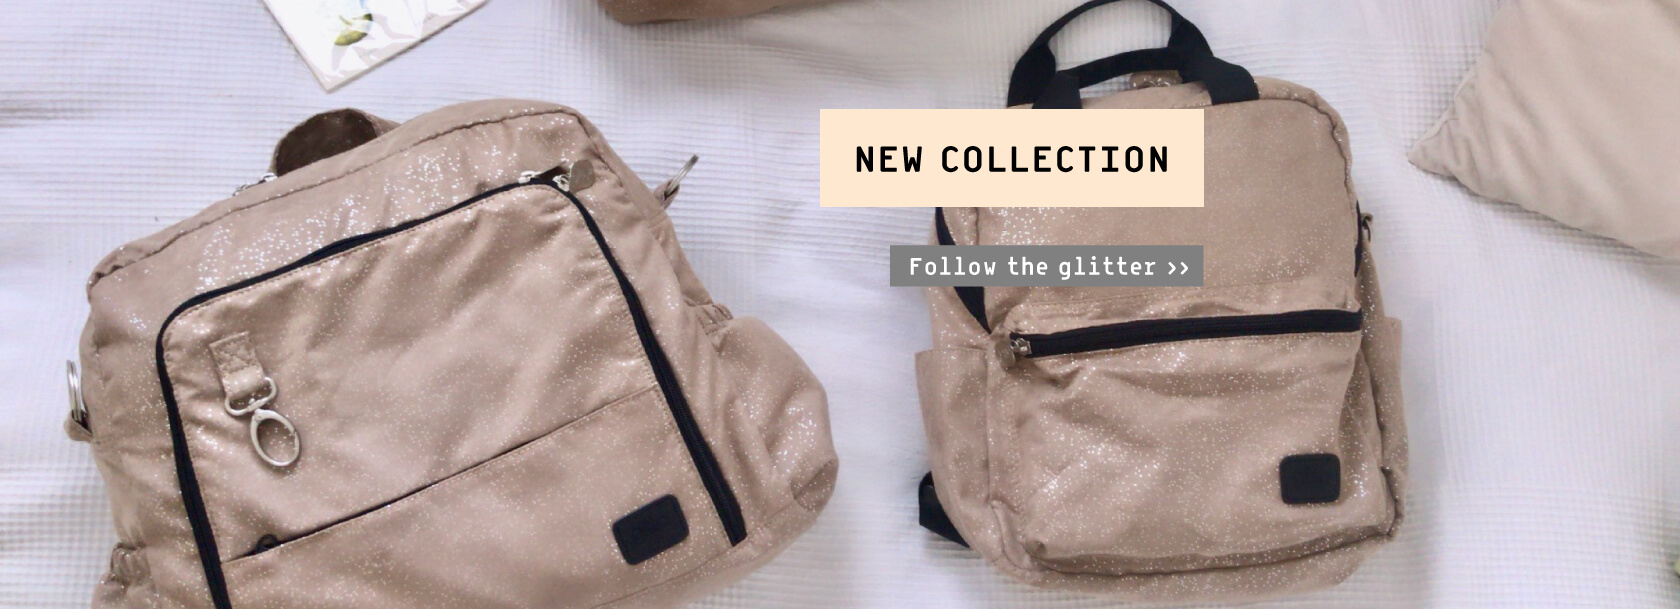 nude-collection-comp-ENG